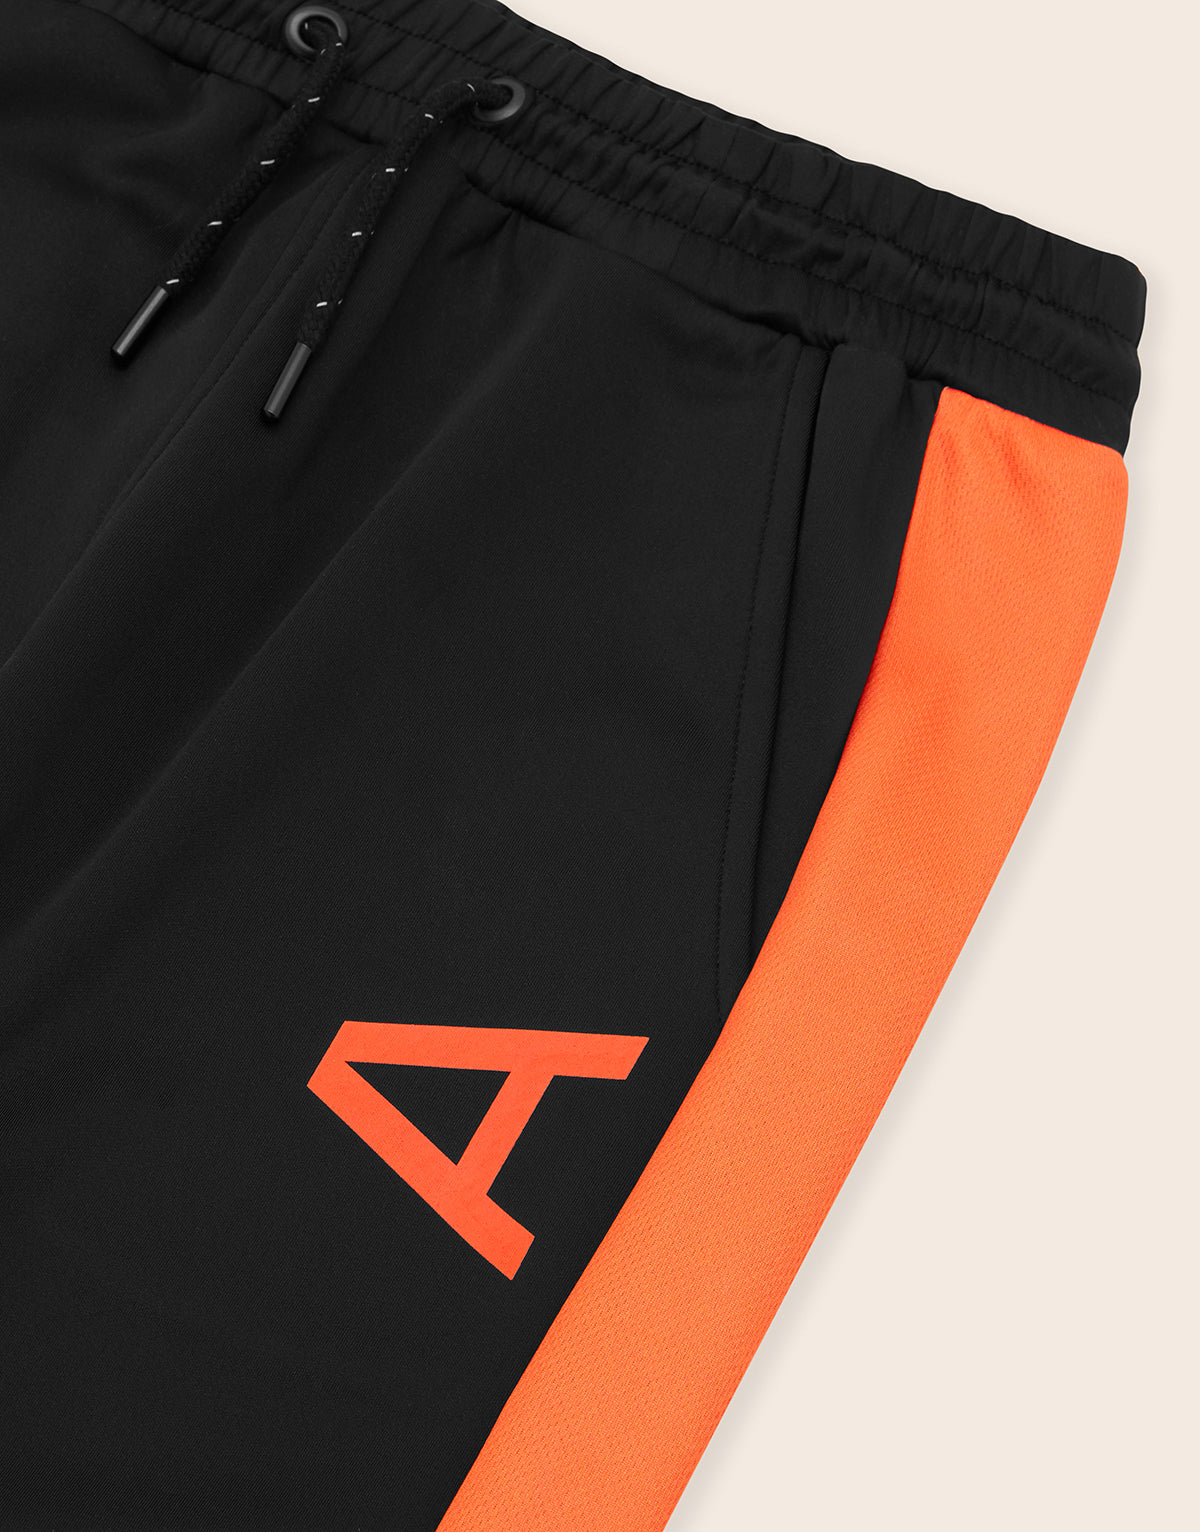 Miletus Joggers Black & Orange - Arcminute